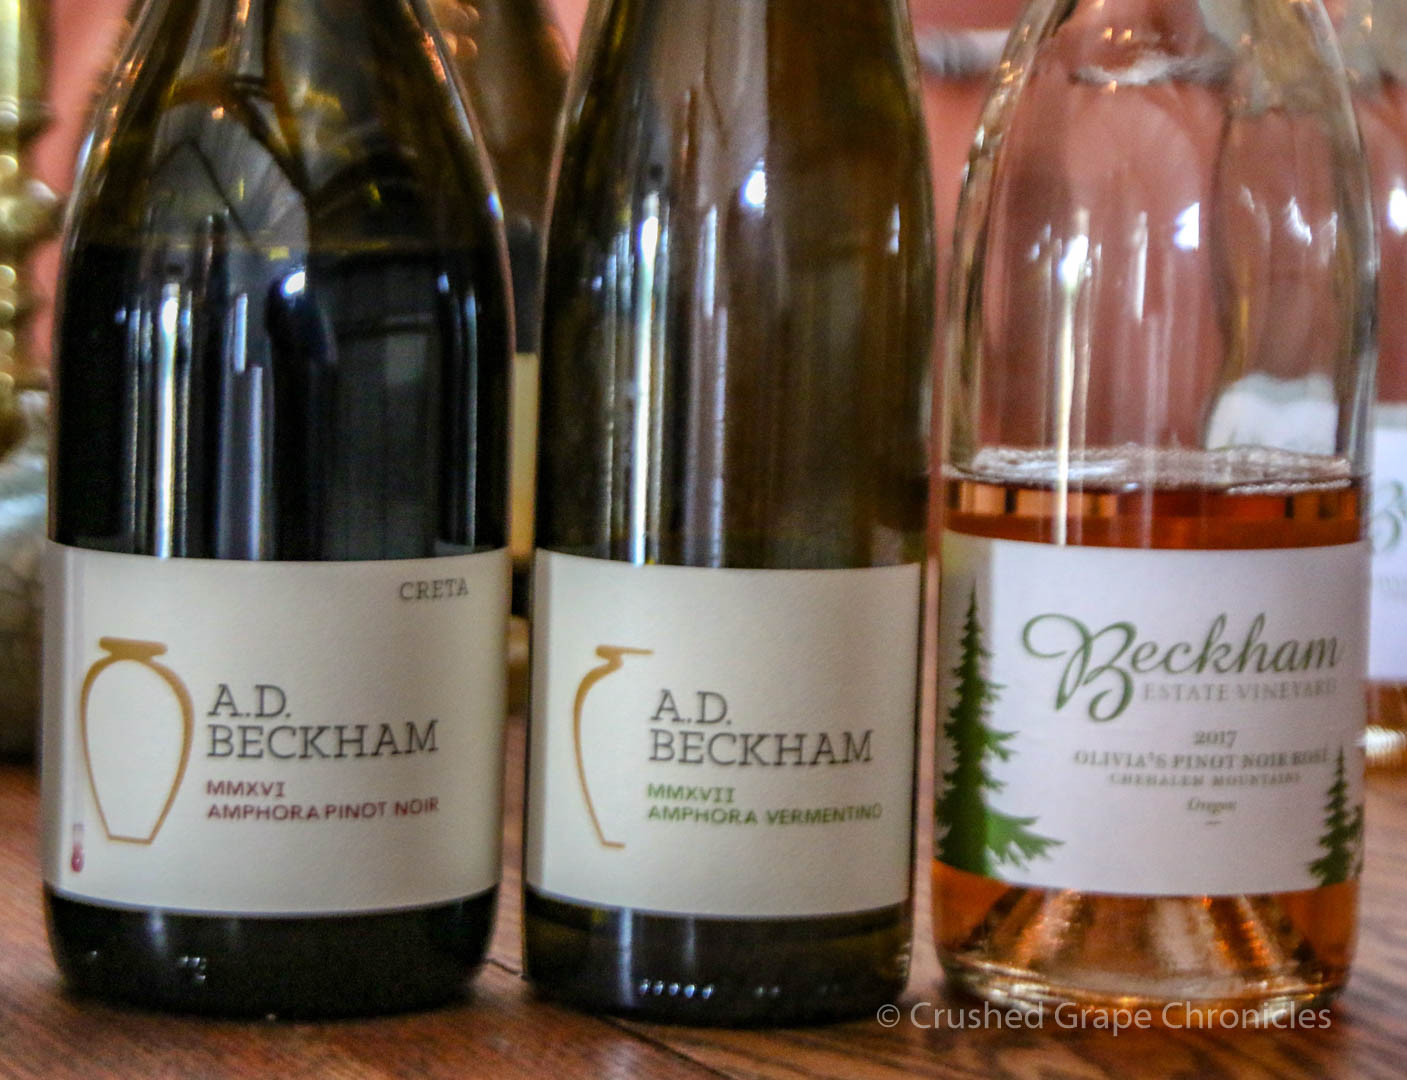 Tasting in the Beckham Winery